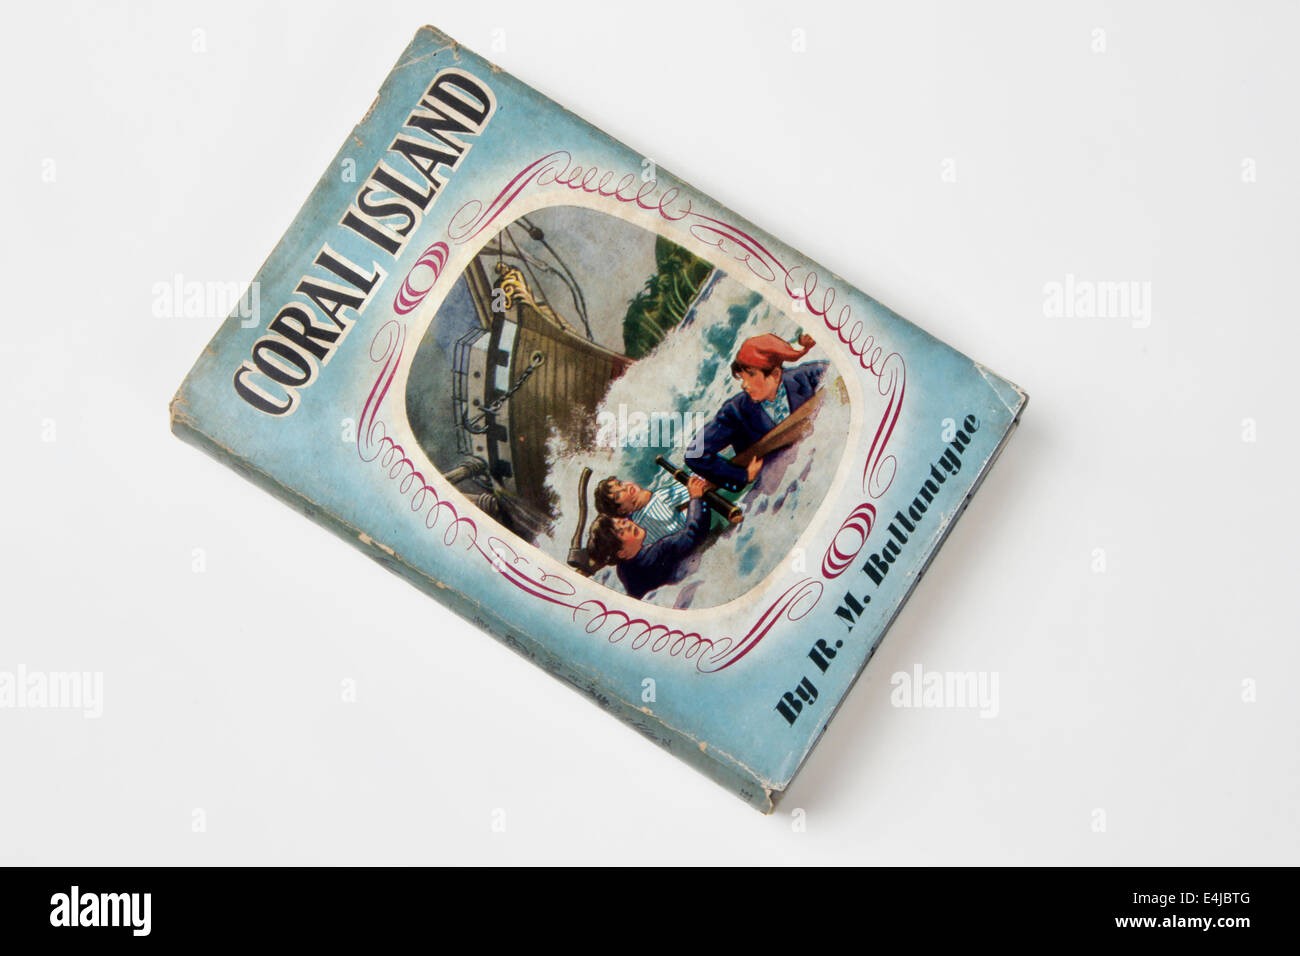 1950s copy of the book Coral Island, by R M Ballantyne - Stock Image